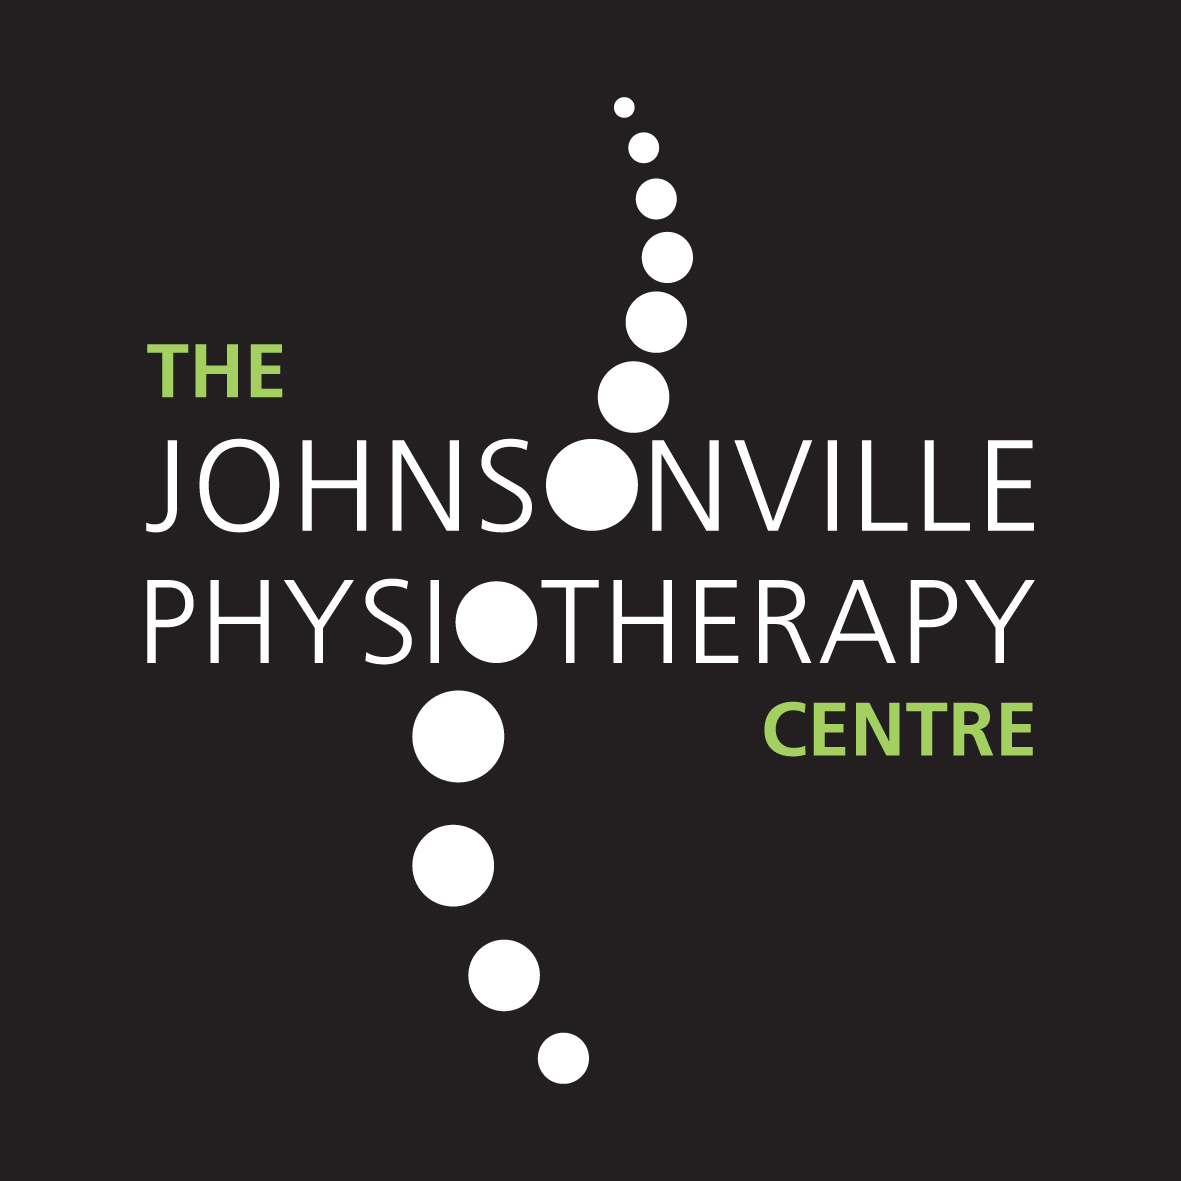 The Johnsonville Physiotherapy Centre Ltd